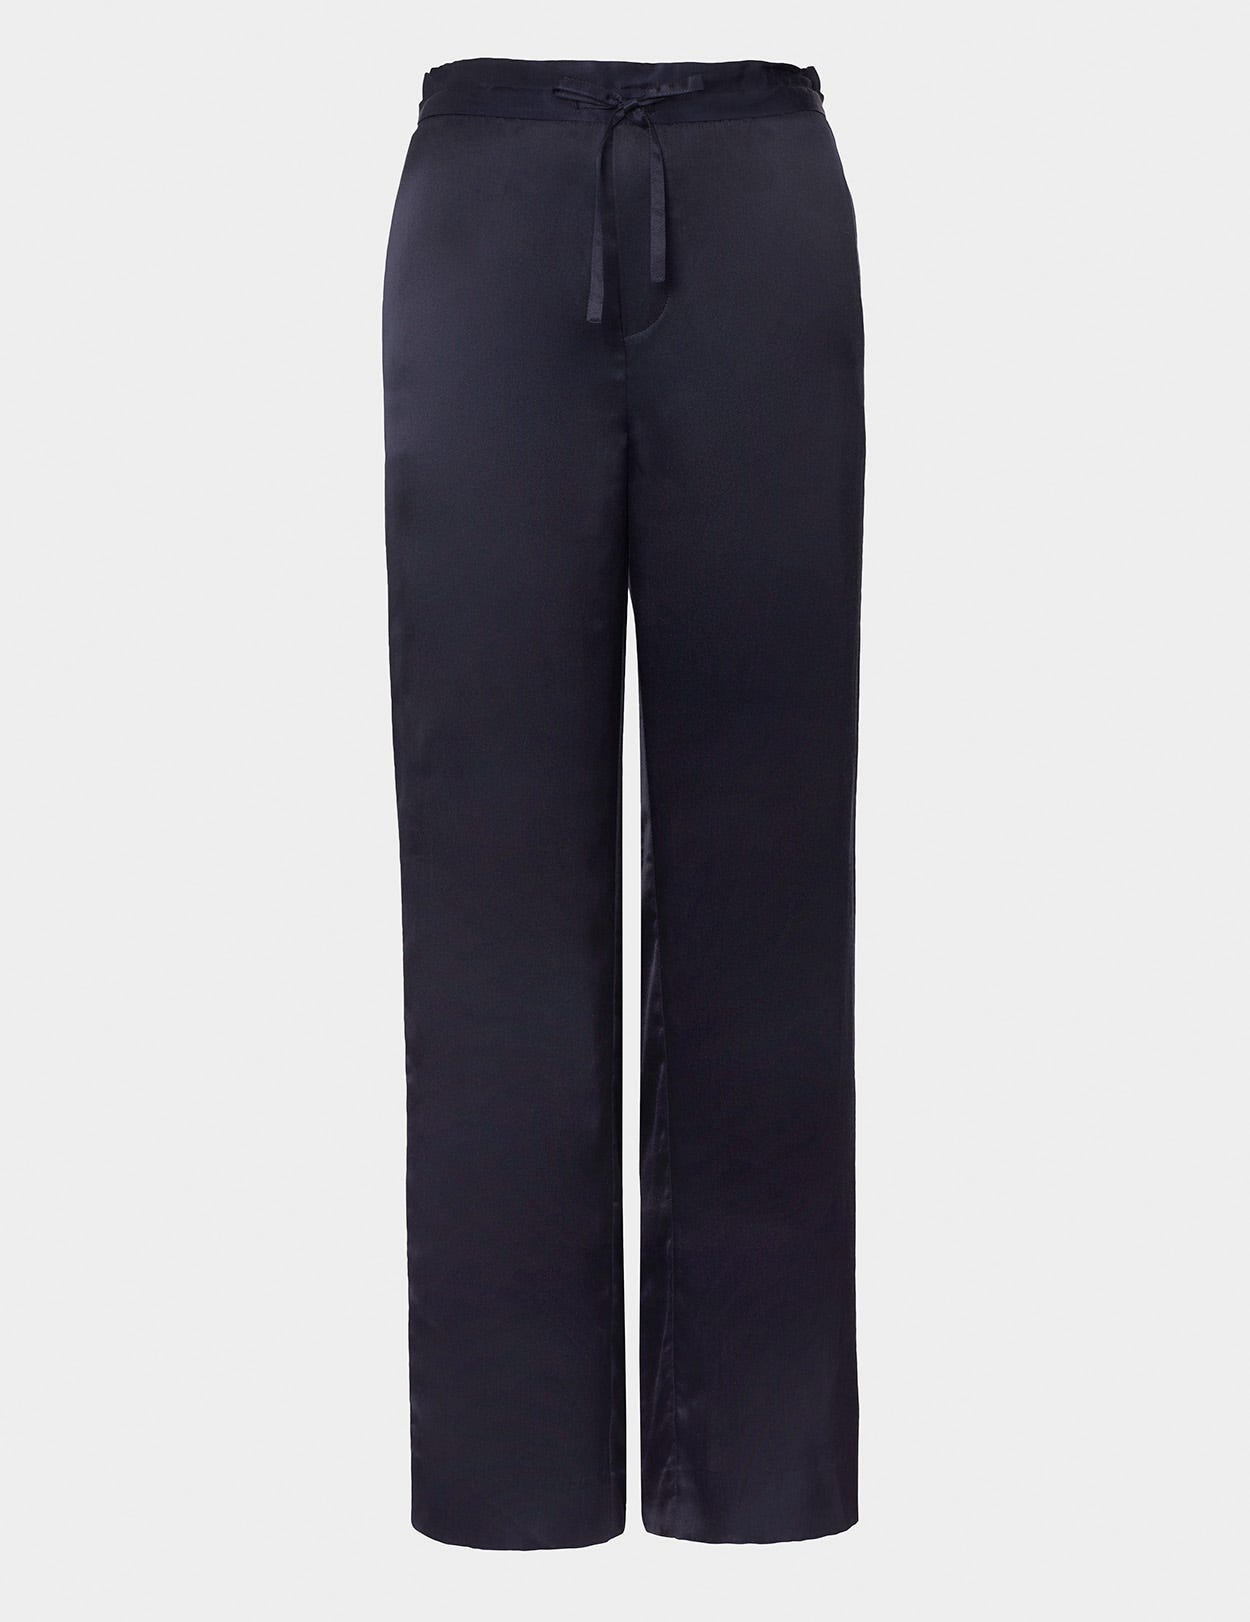 EASY LEISURE TROUSERS